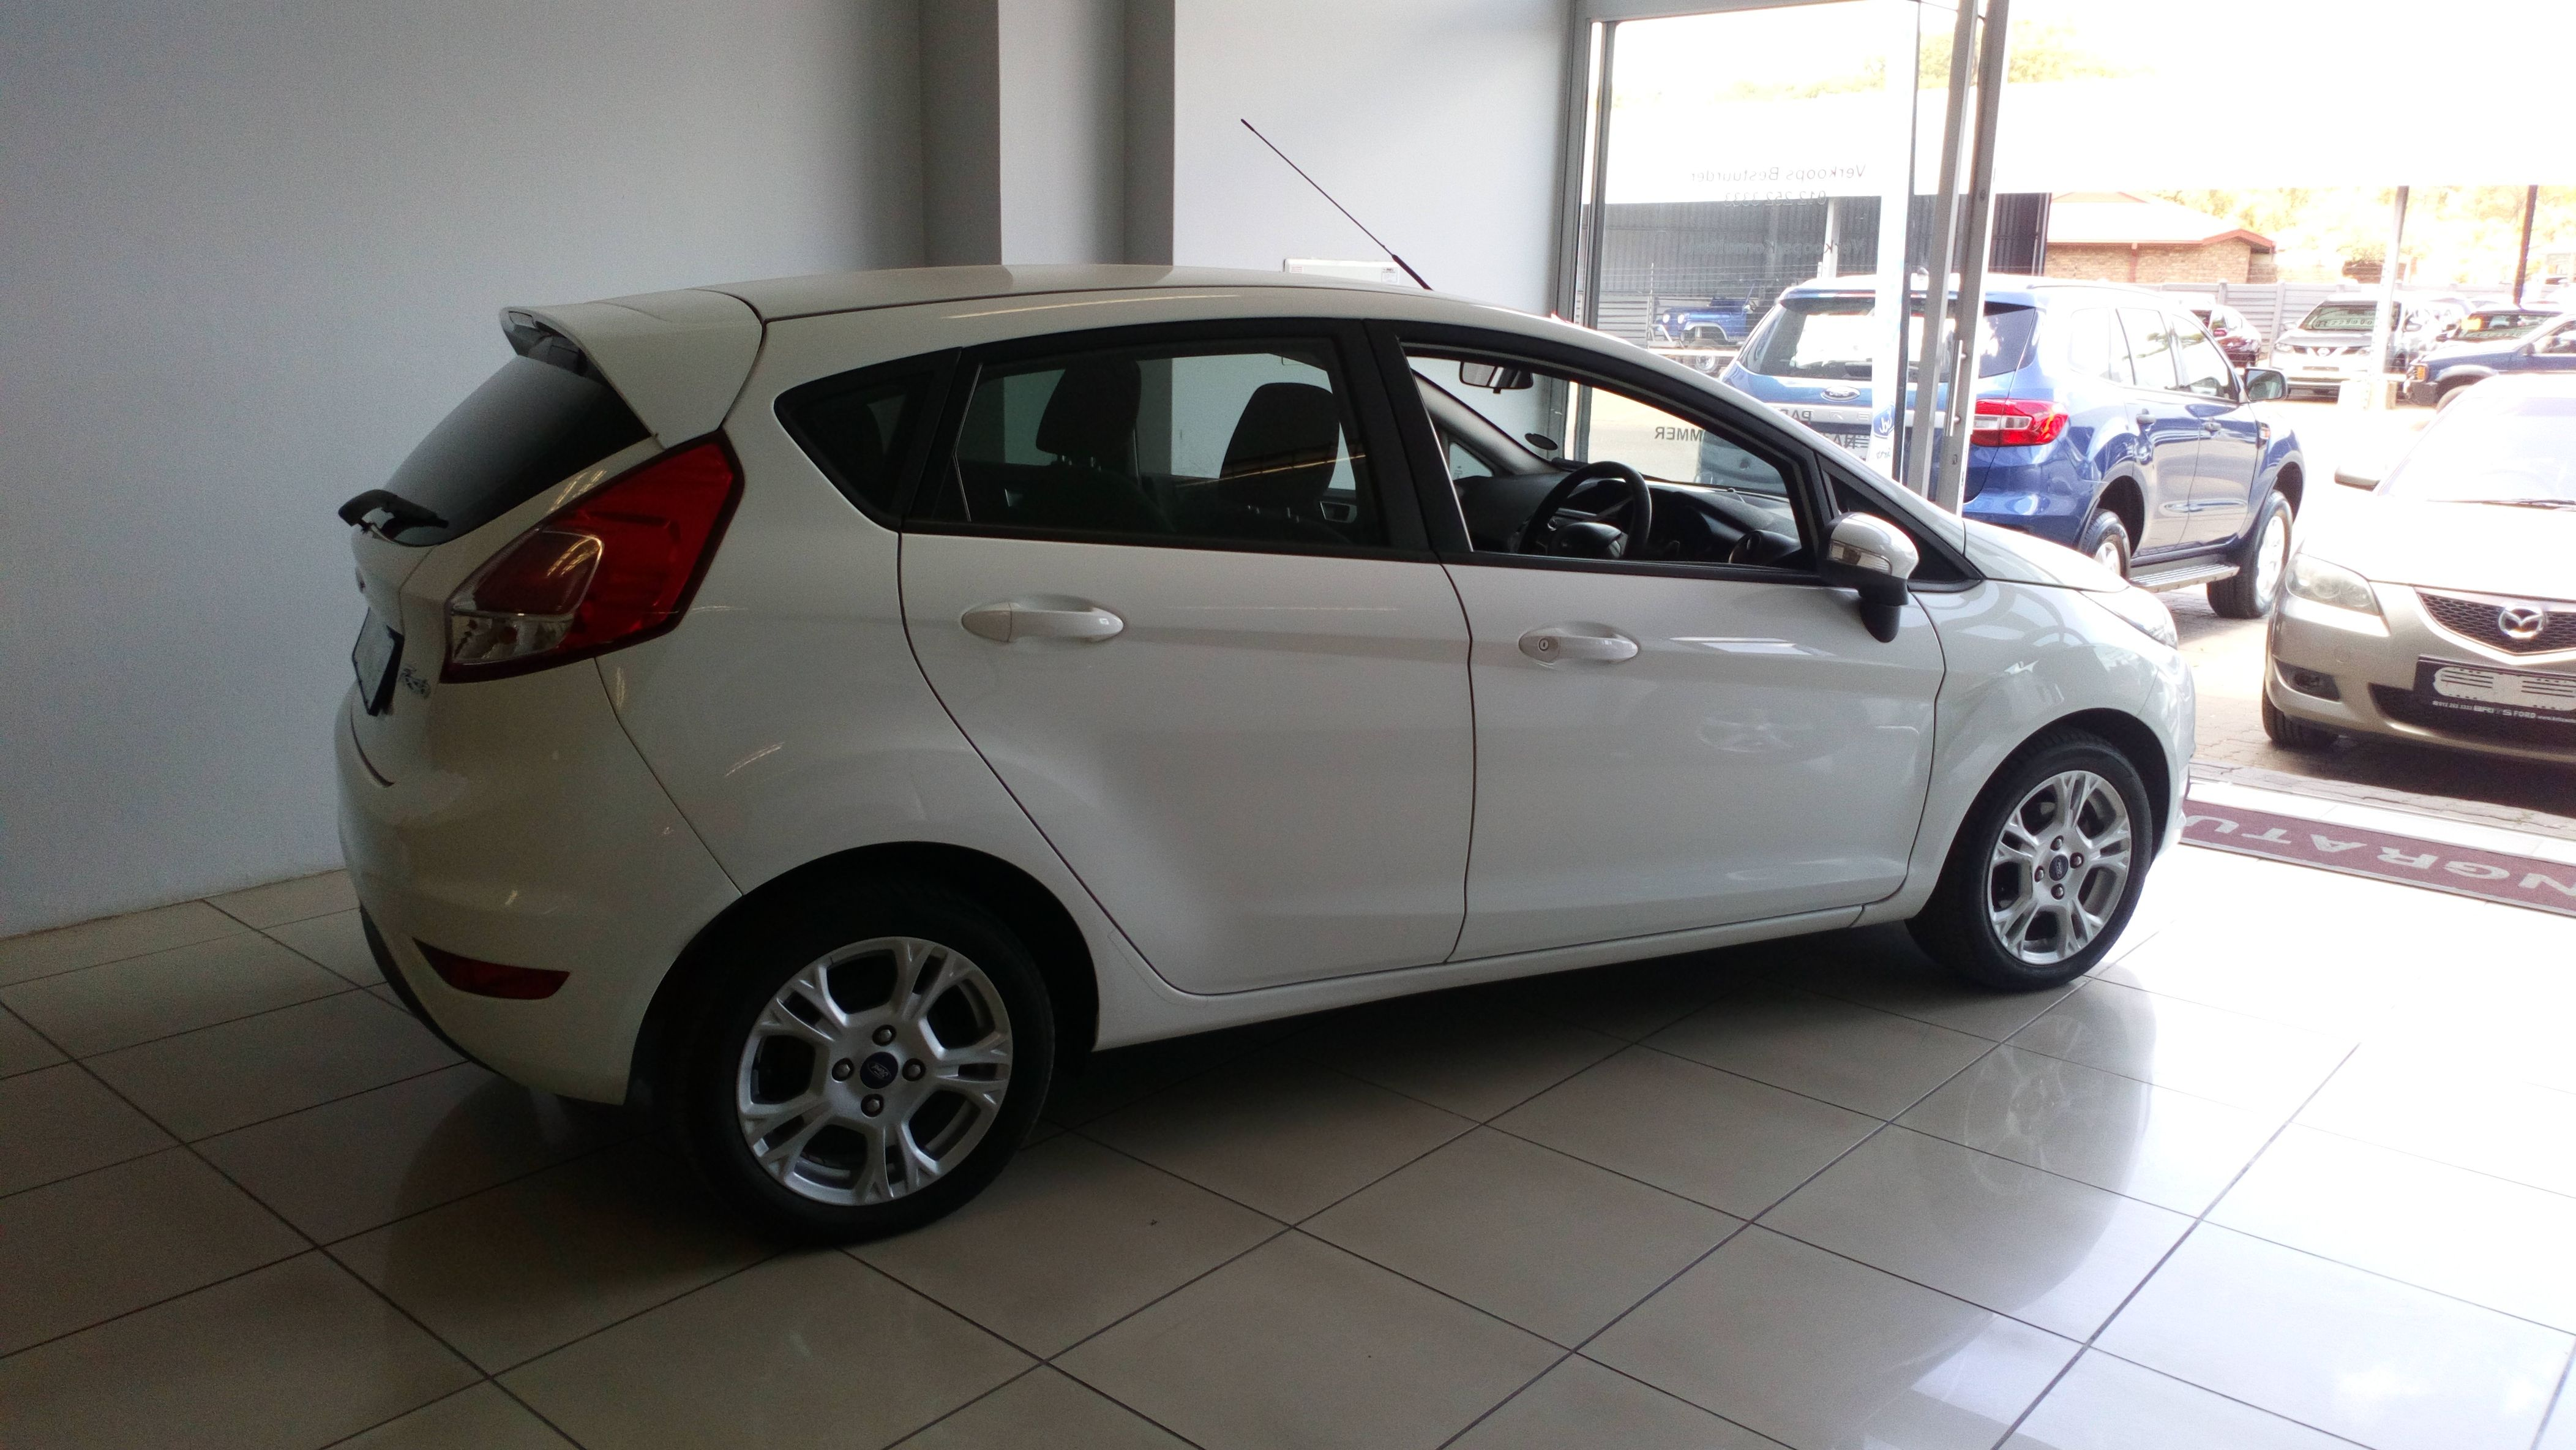 Ford Fiesta 1 6 Trend 2013 Turbo Diesel For R129 900 Excluding Vat Warranty On The Road Can Find Me At Brits Ford Can Contact Me On Ford Fiesta Ford Diesel